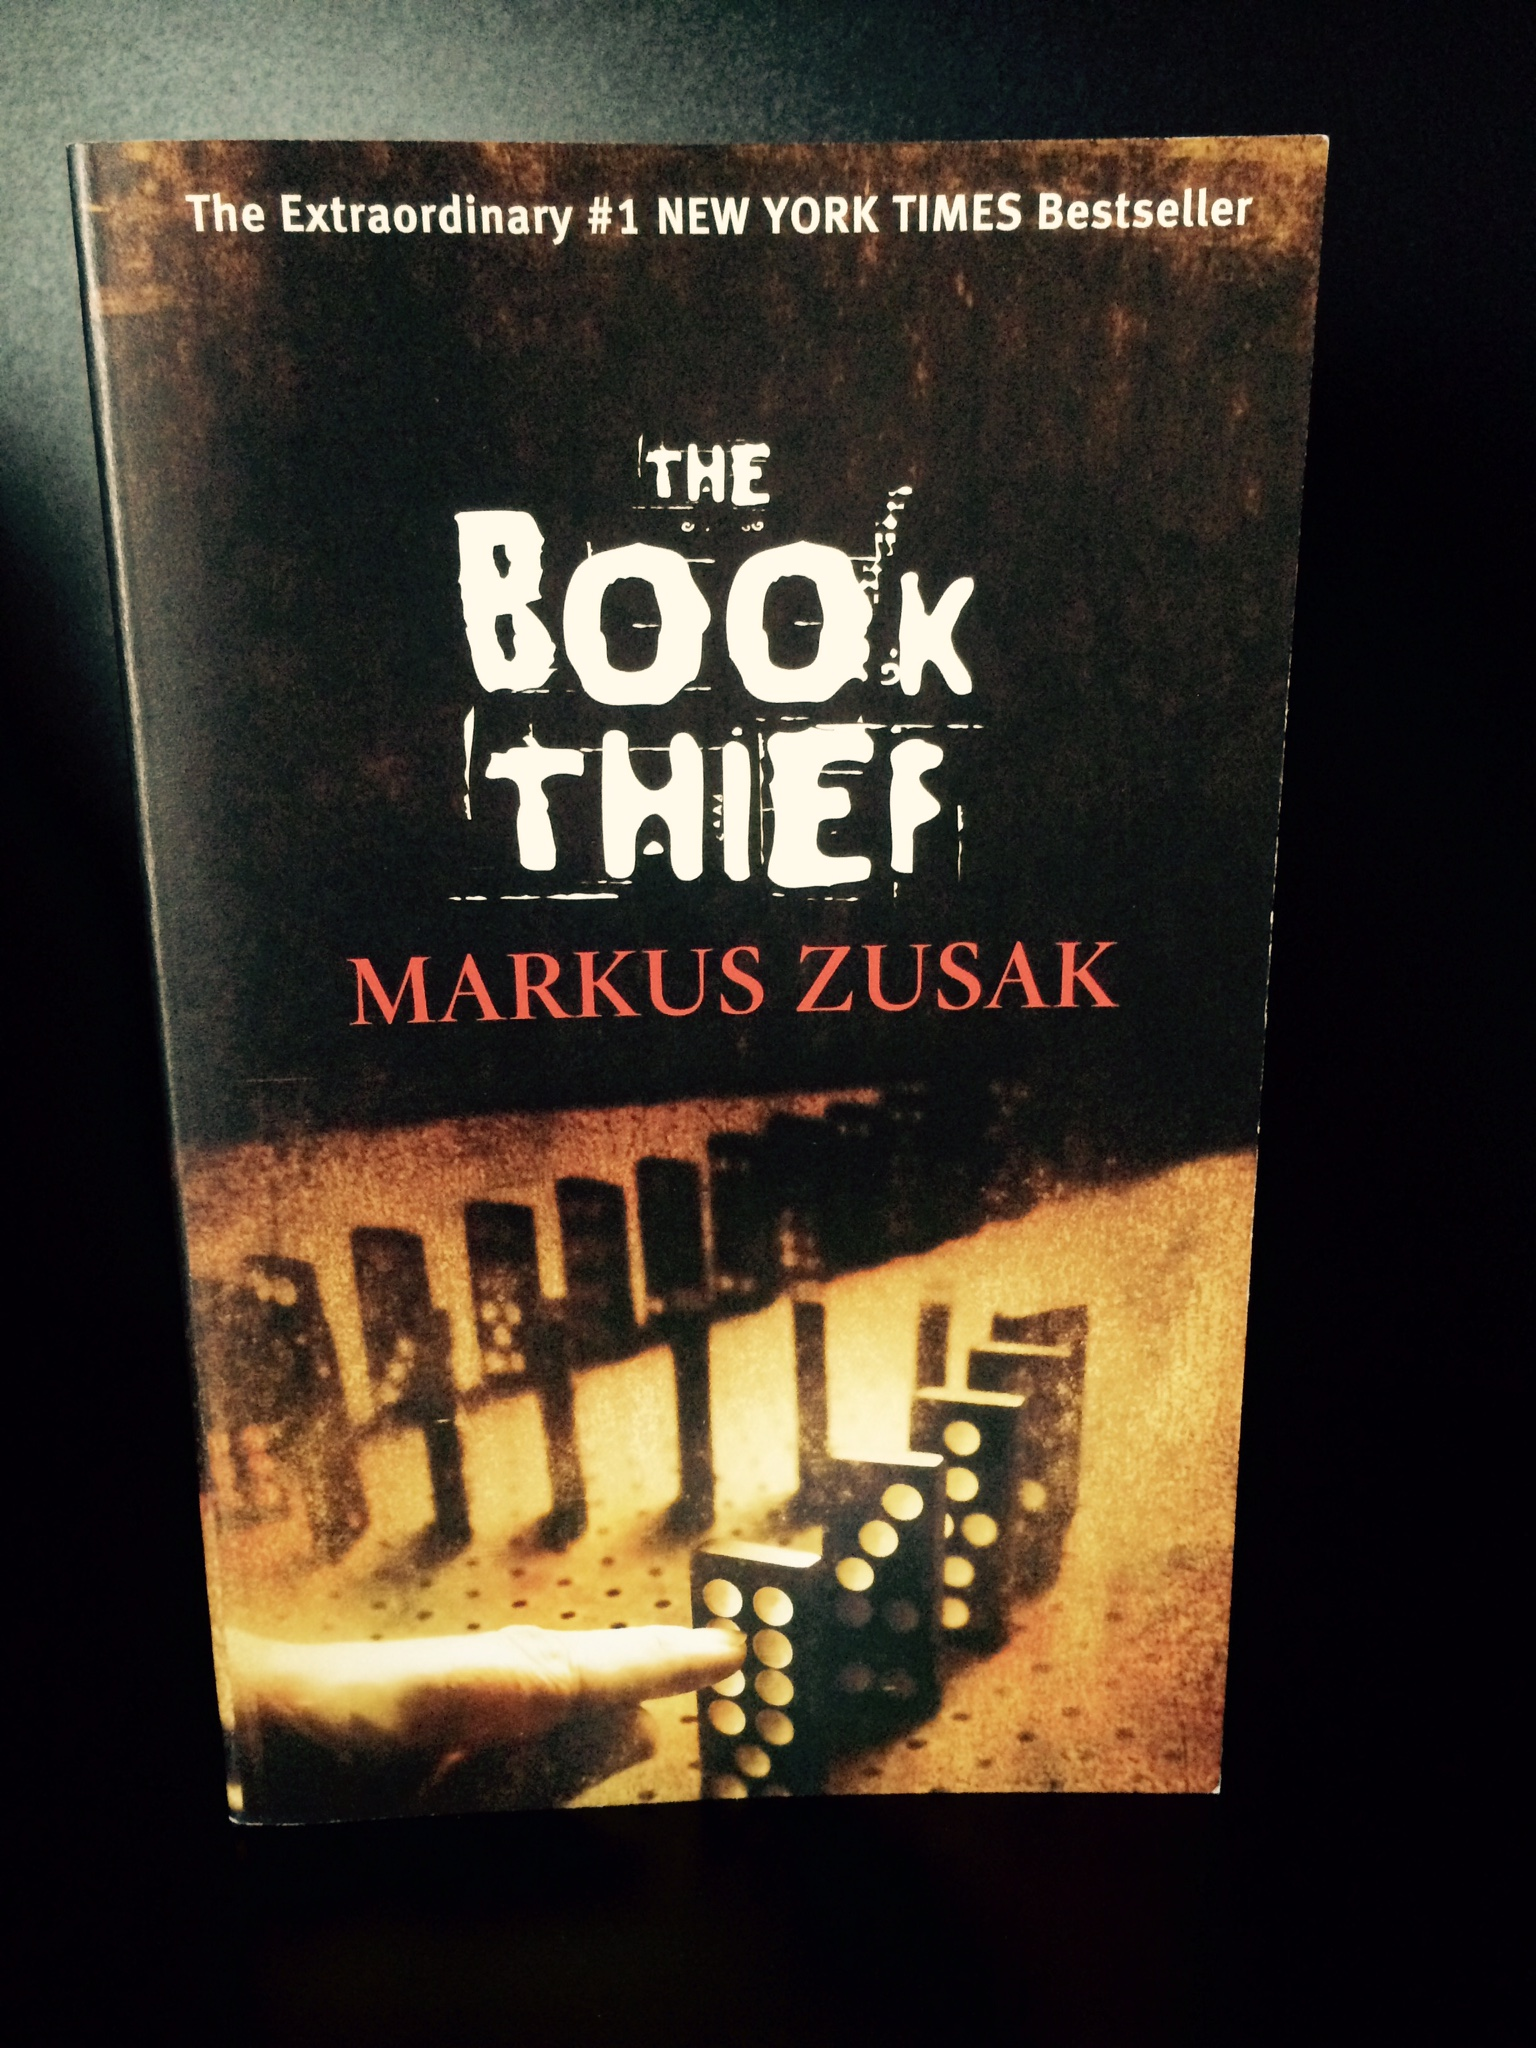 markus zusak writing style Everything you need to know about the writing style of markus zusak's i am the messenger, written by experts with you in mind.